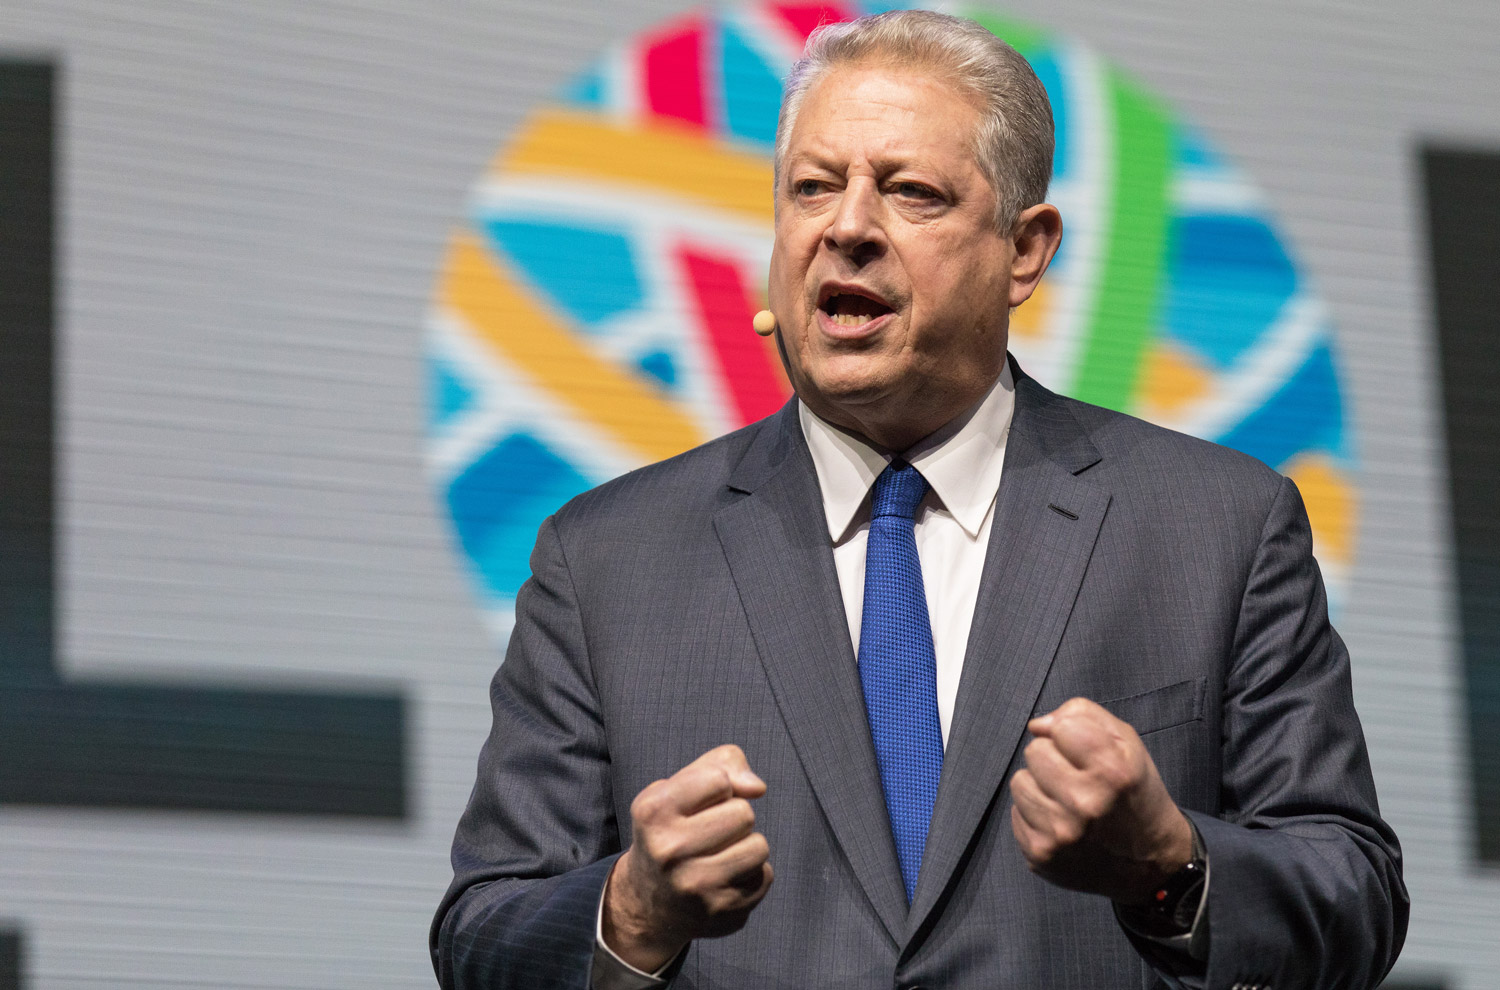 Al Gore at the San Francisco Moscone Convention Center